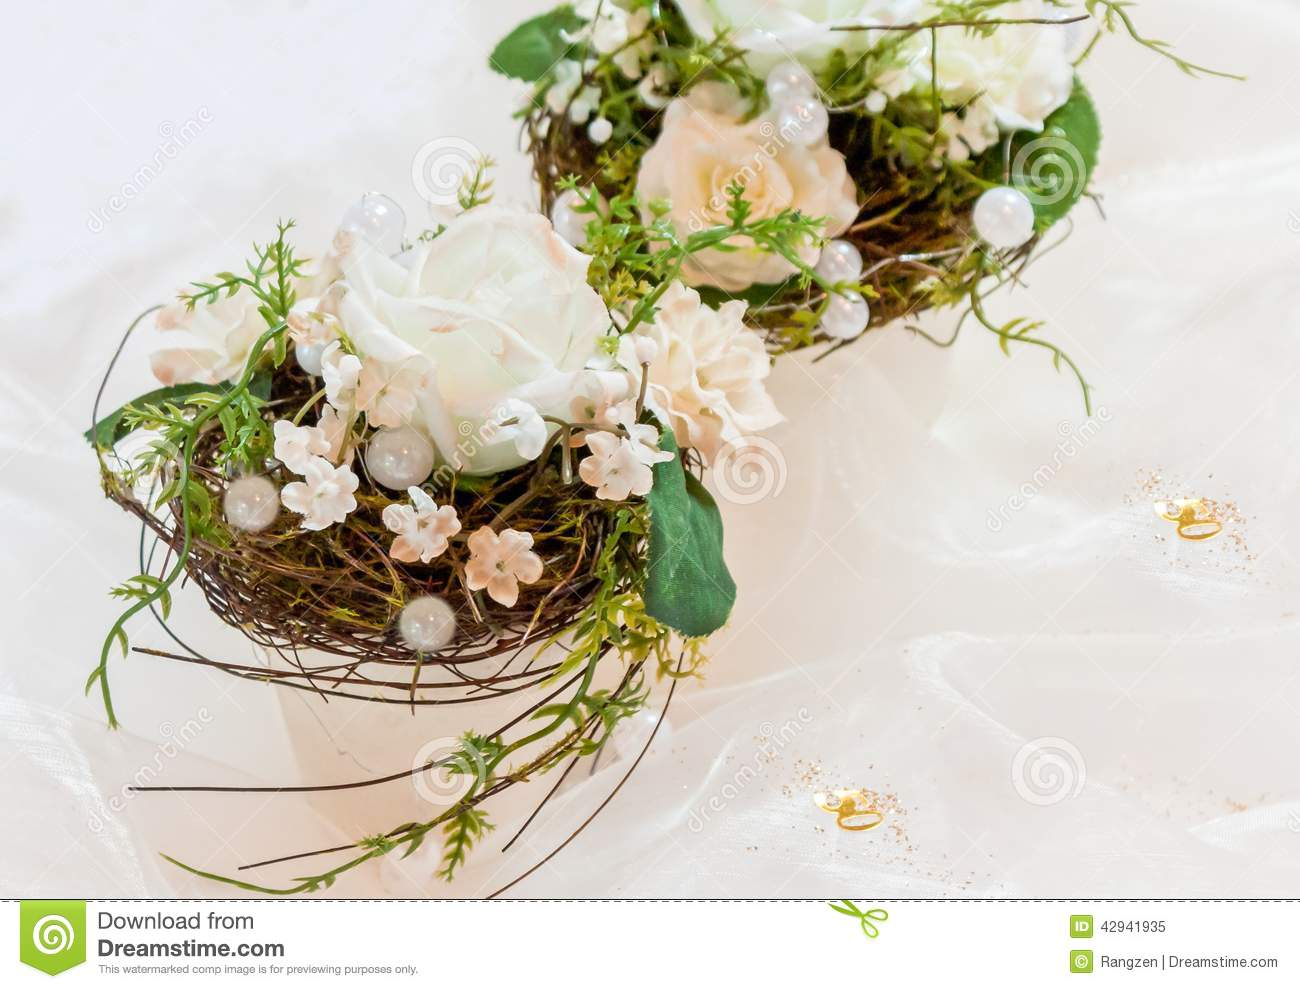 Flower Arrangements In Creamy White To 50th Wedding Anniversary